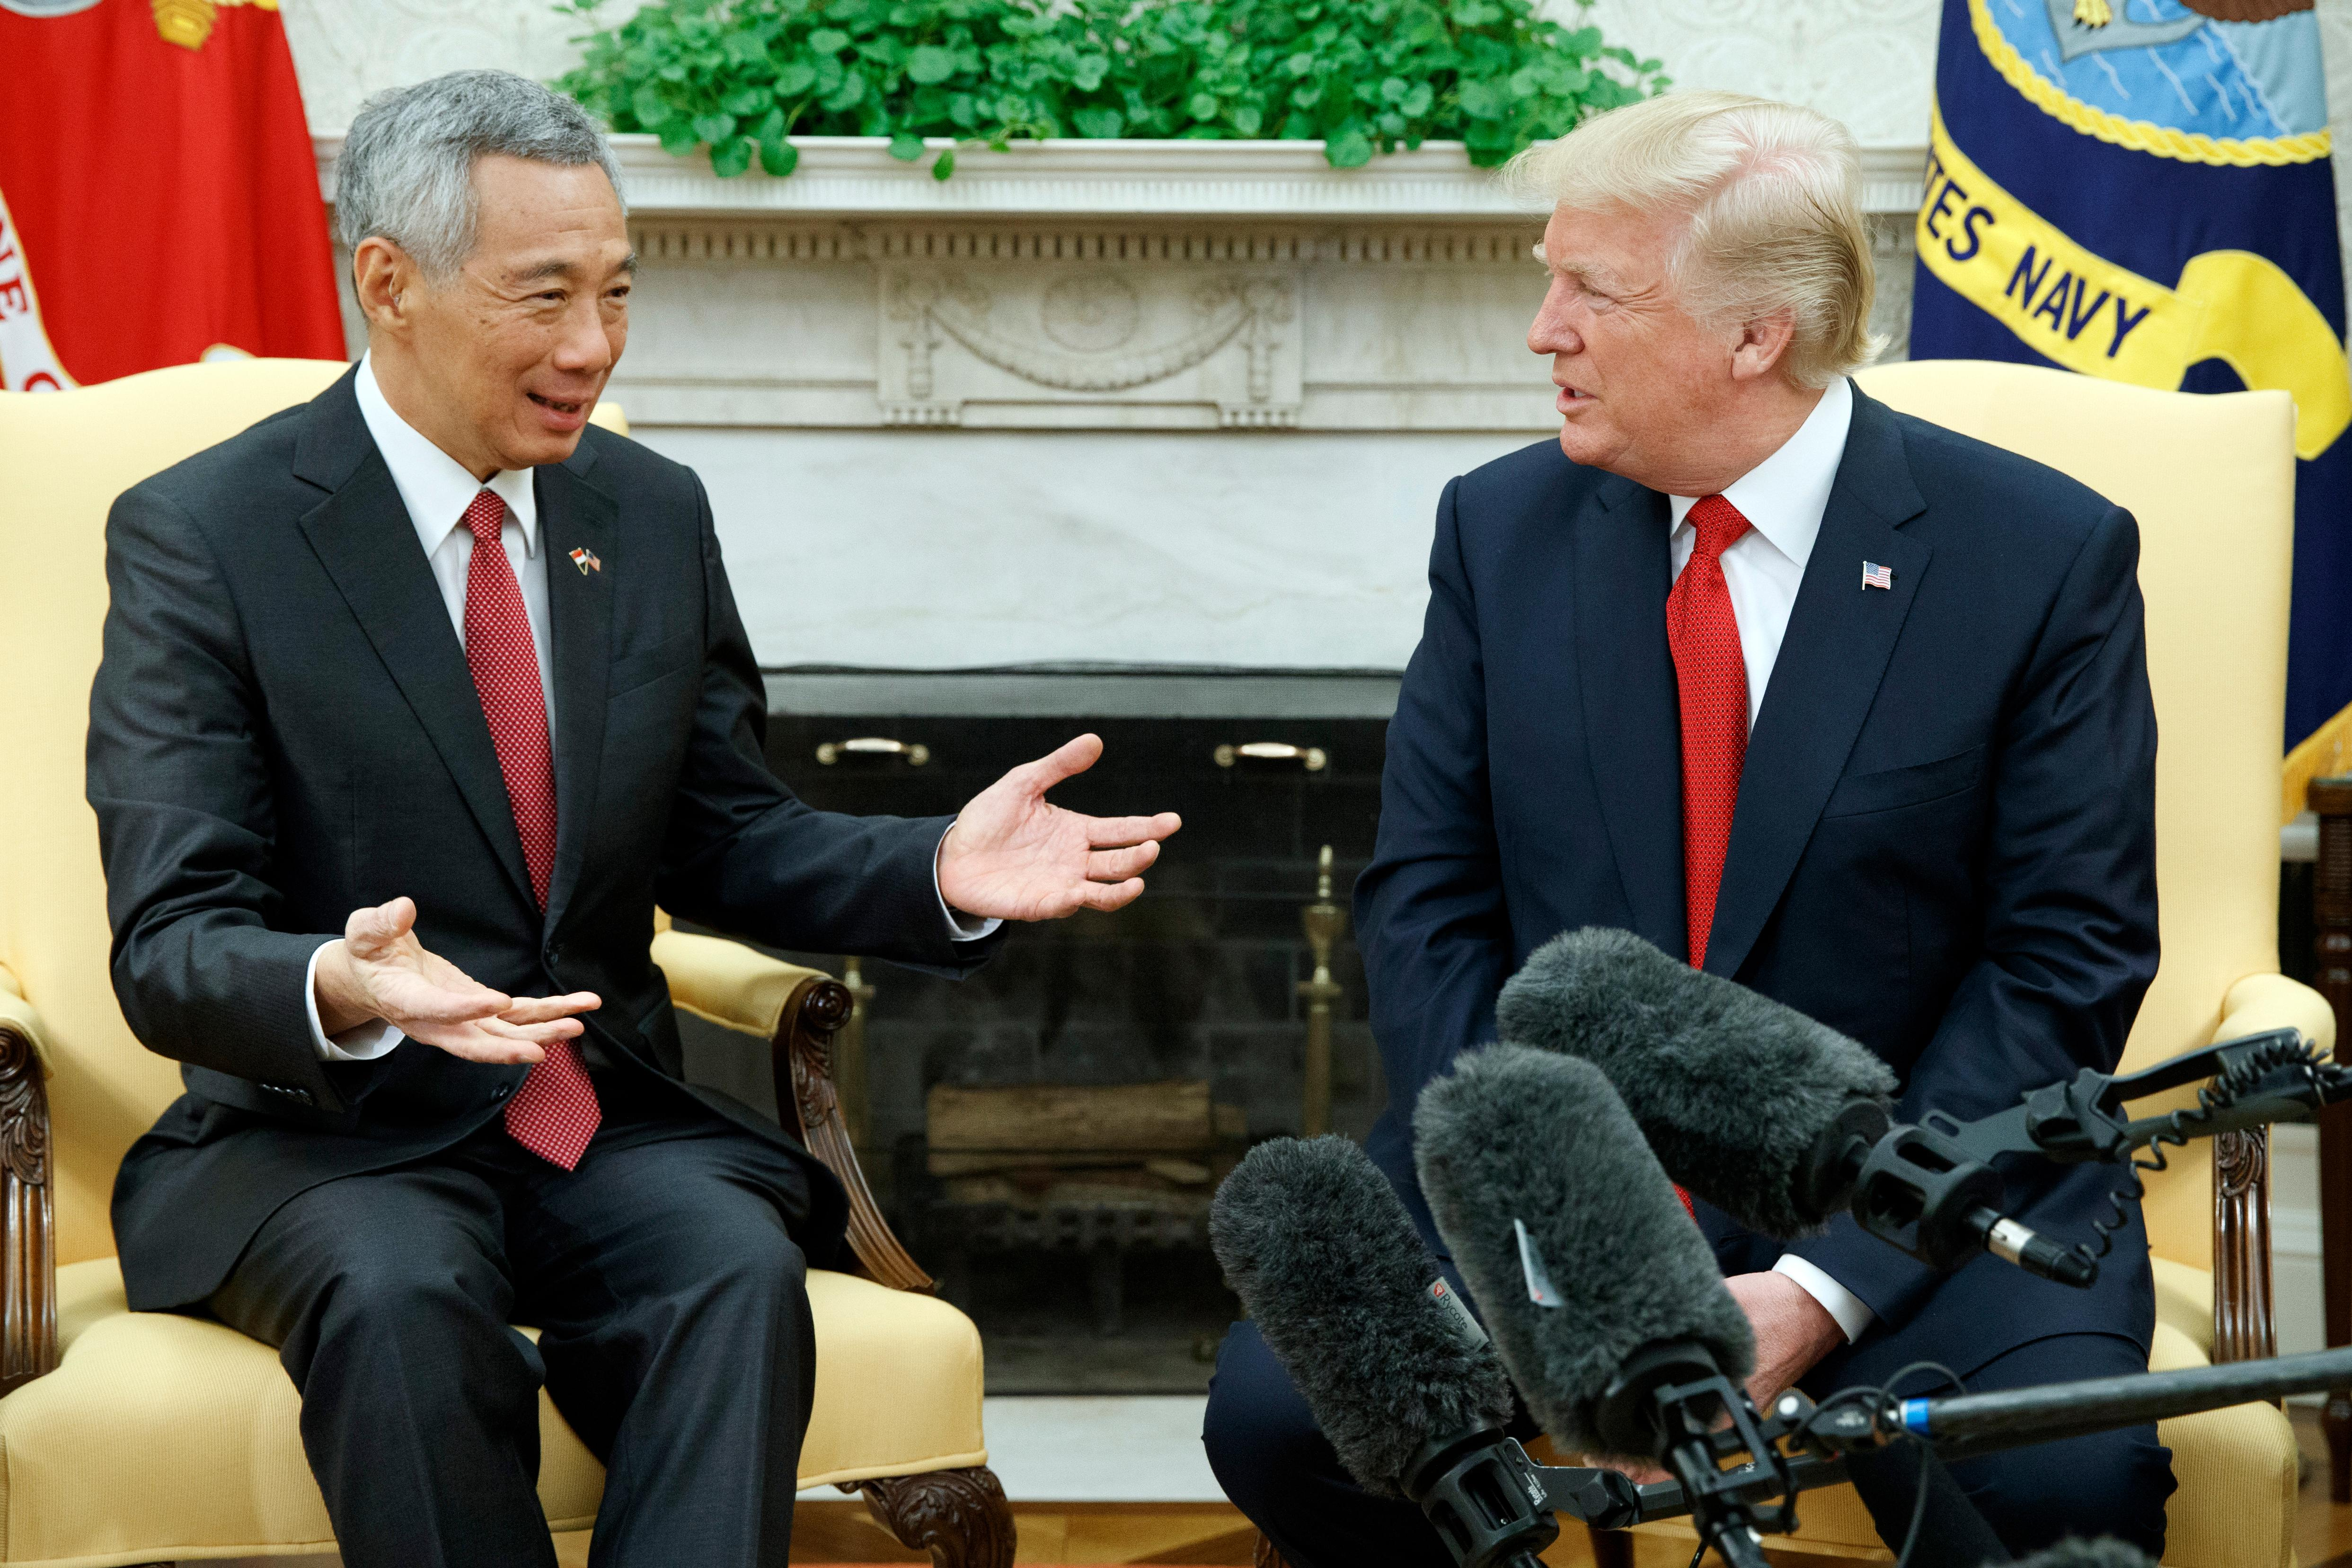 President Donald Trump listens as Singapore's Prime Minister Lee Hsien Loong speaks during a meeting in the Oval Office of the White House, Monday, Oct. 23, 2017, in Washington. (AP Photo/Evan Vucci)